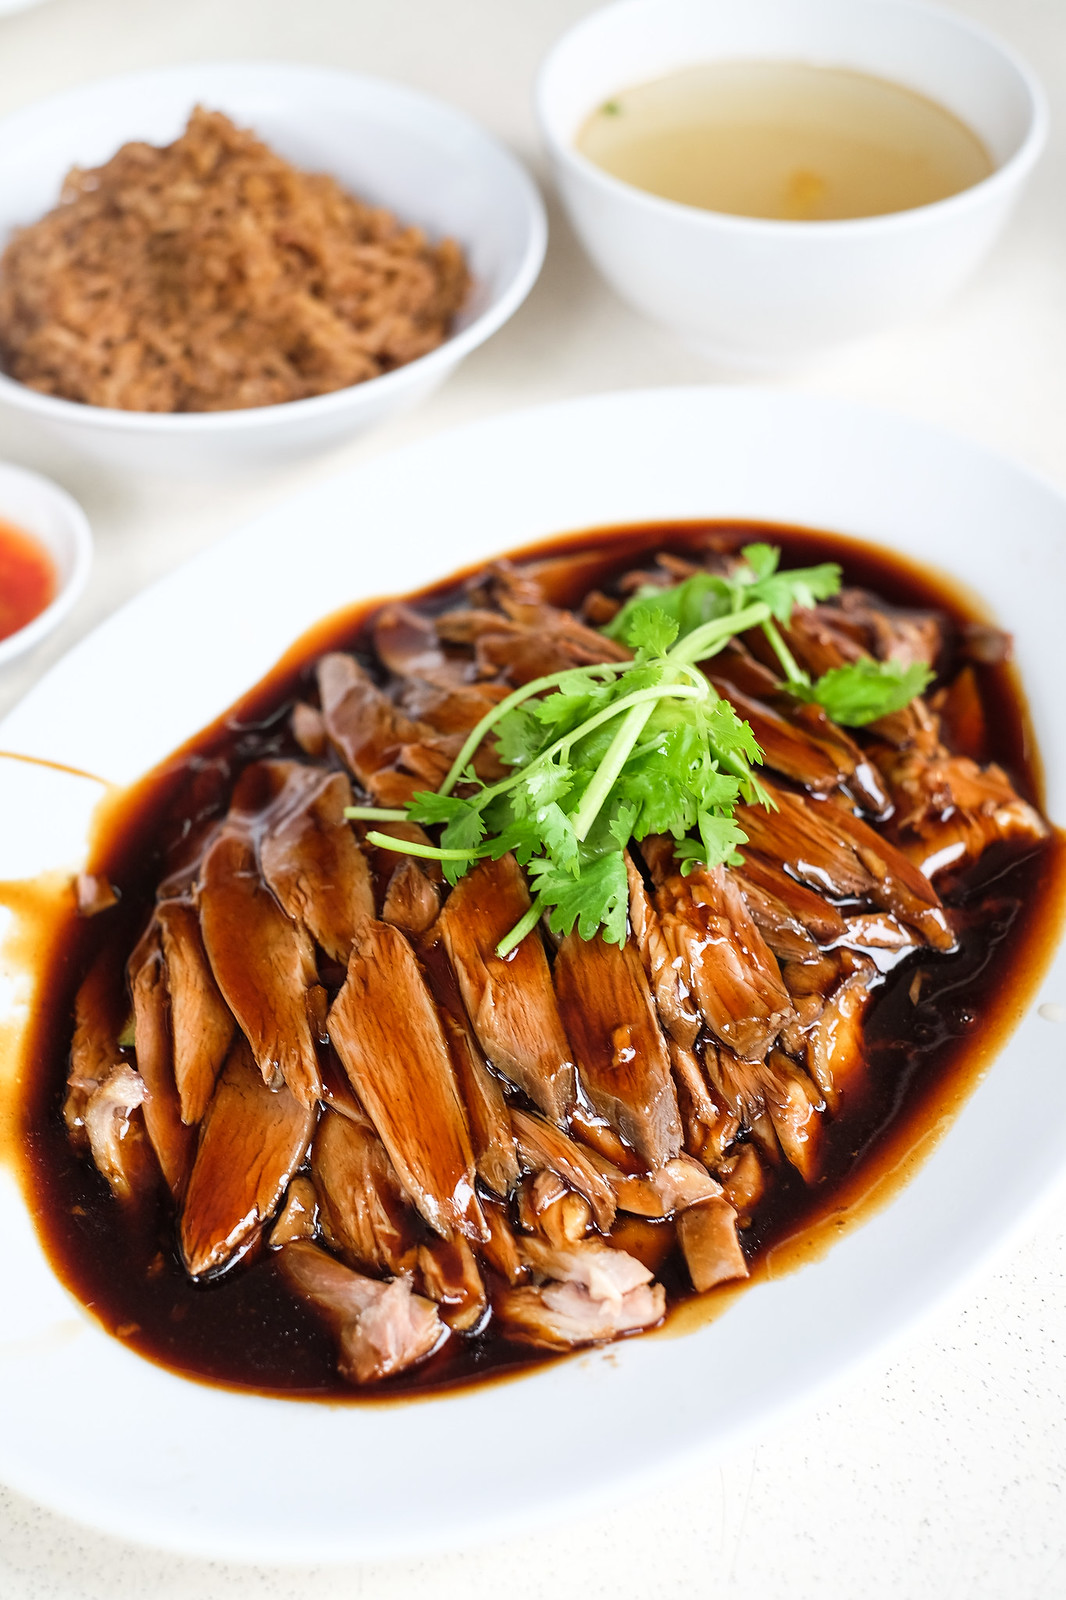 Braised Duck Rice: South Buona Braised Duck